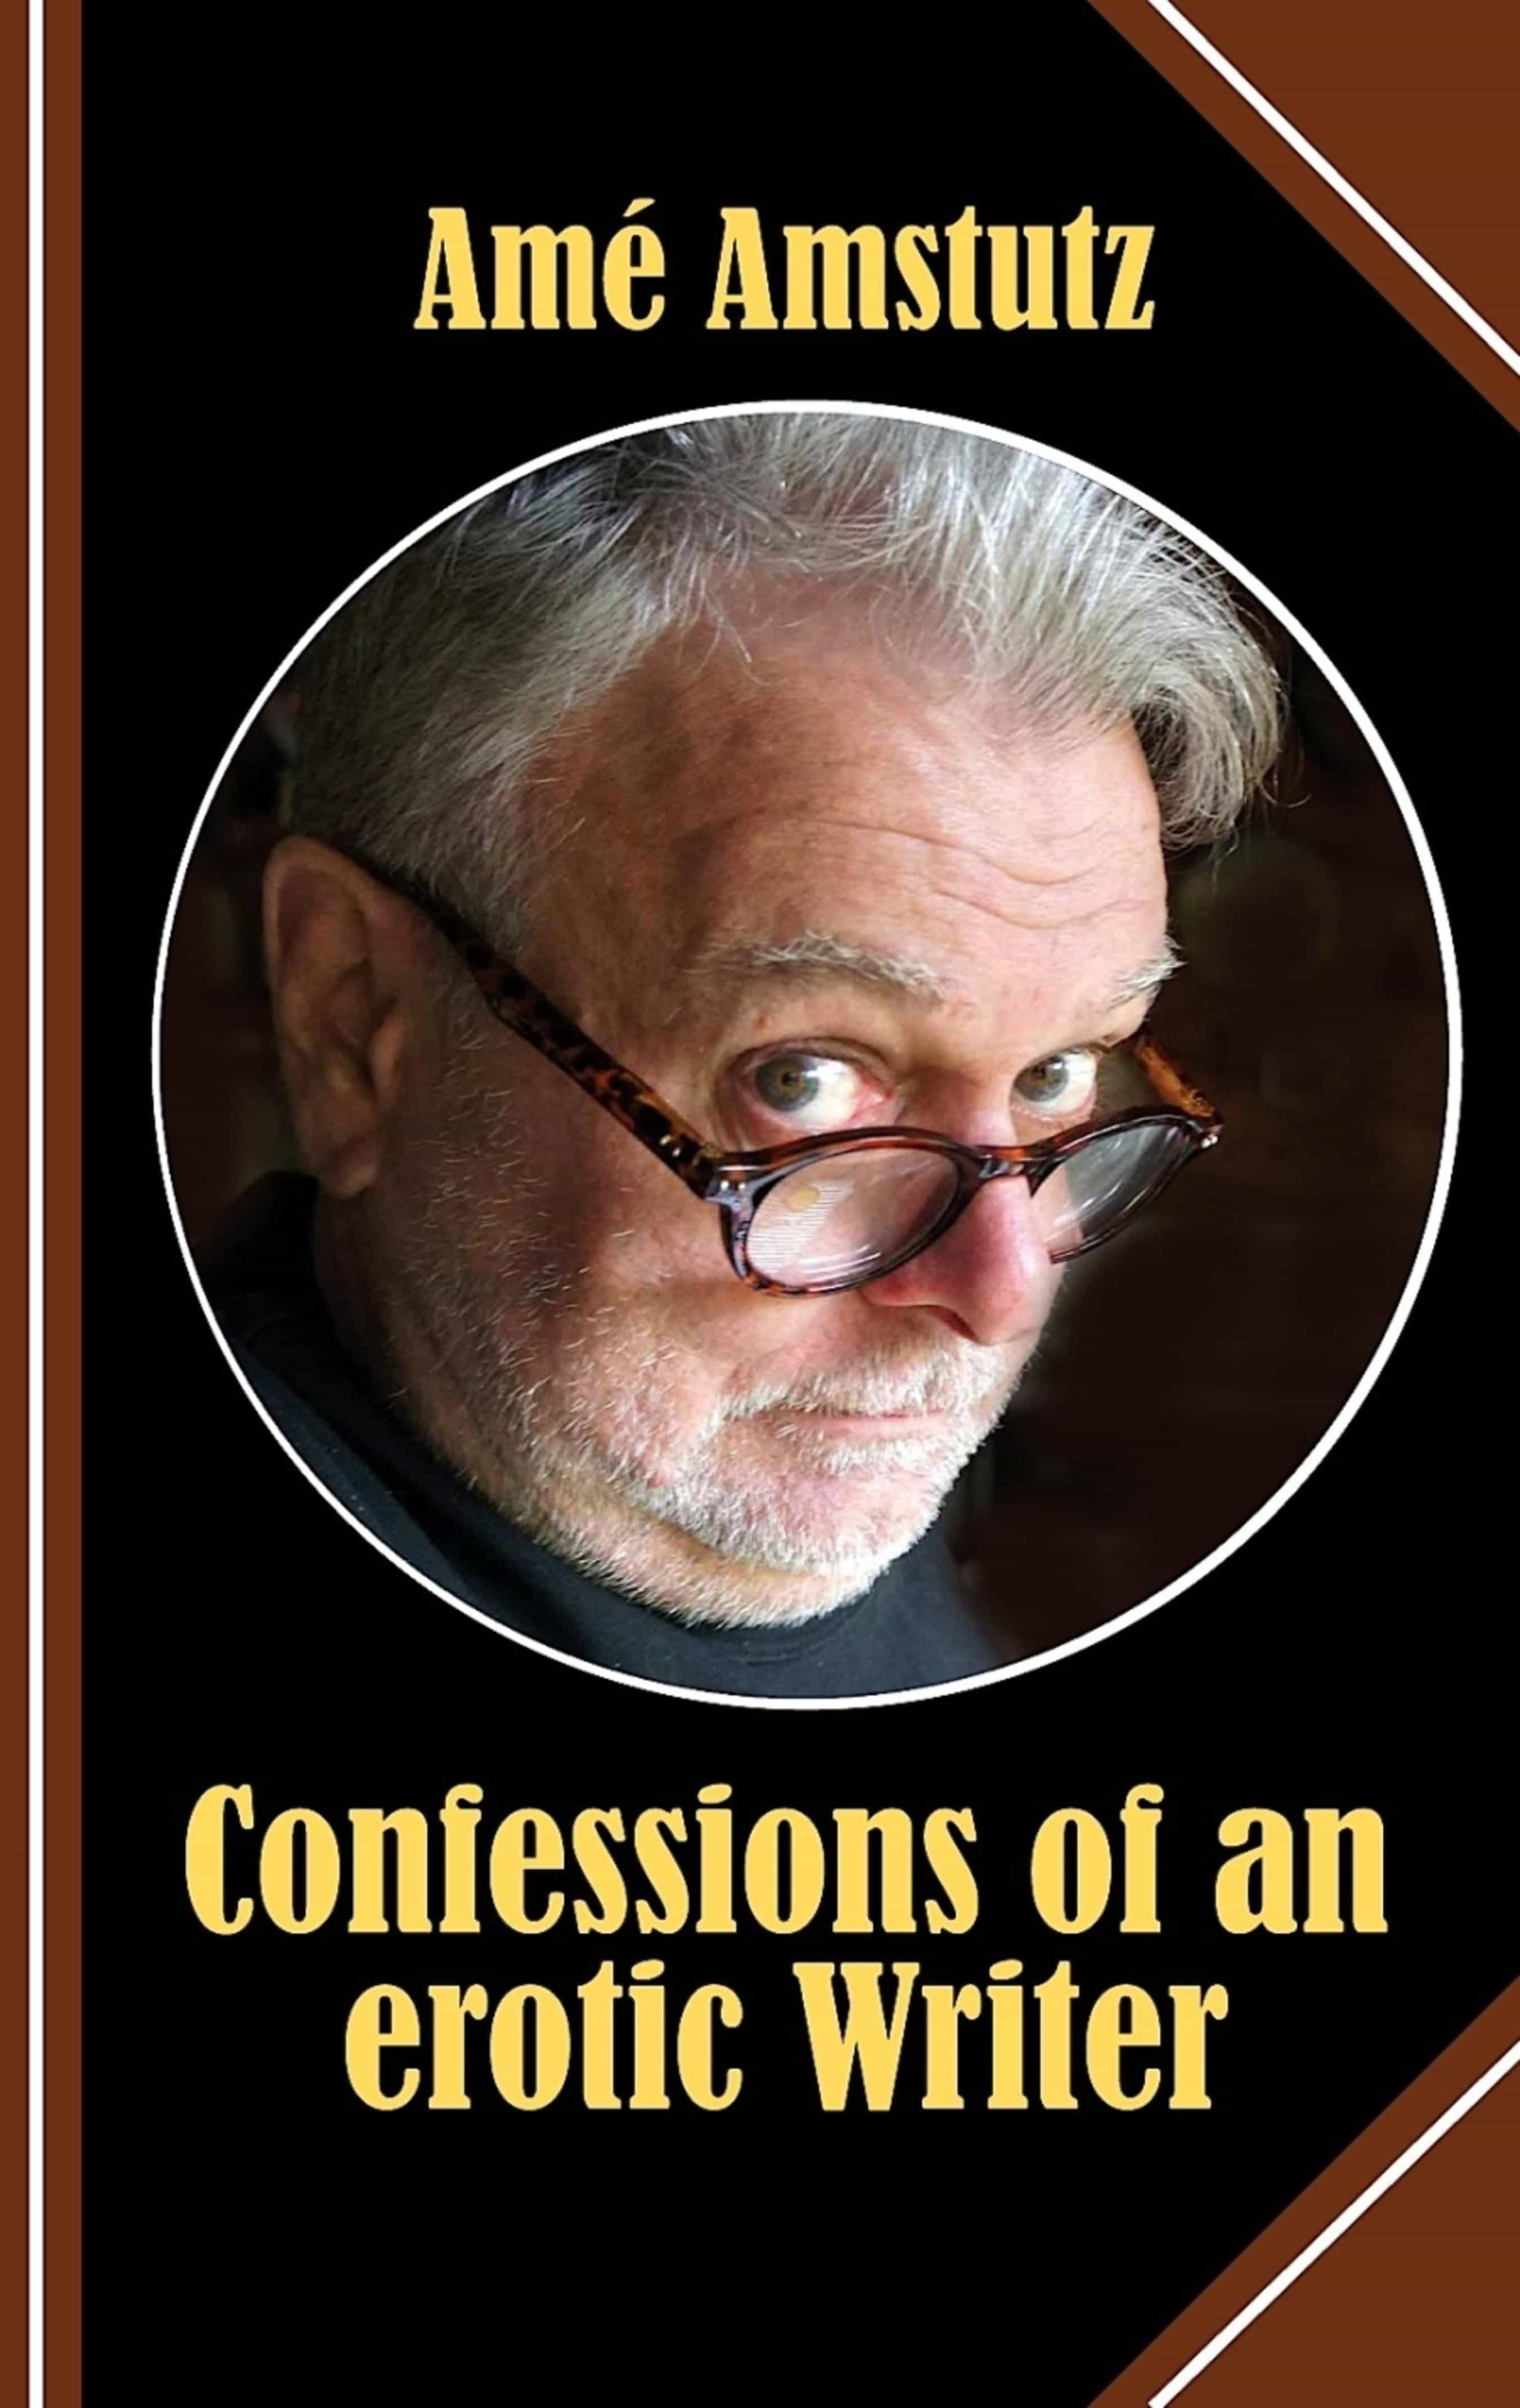 CONFESSIONS OF AN EROTIC WRITER